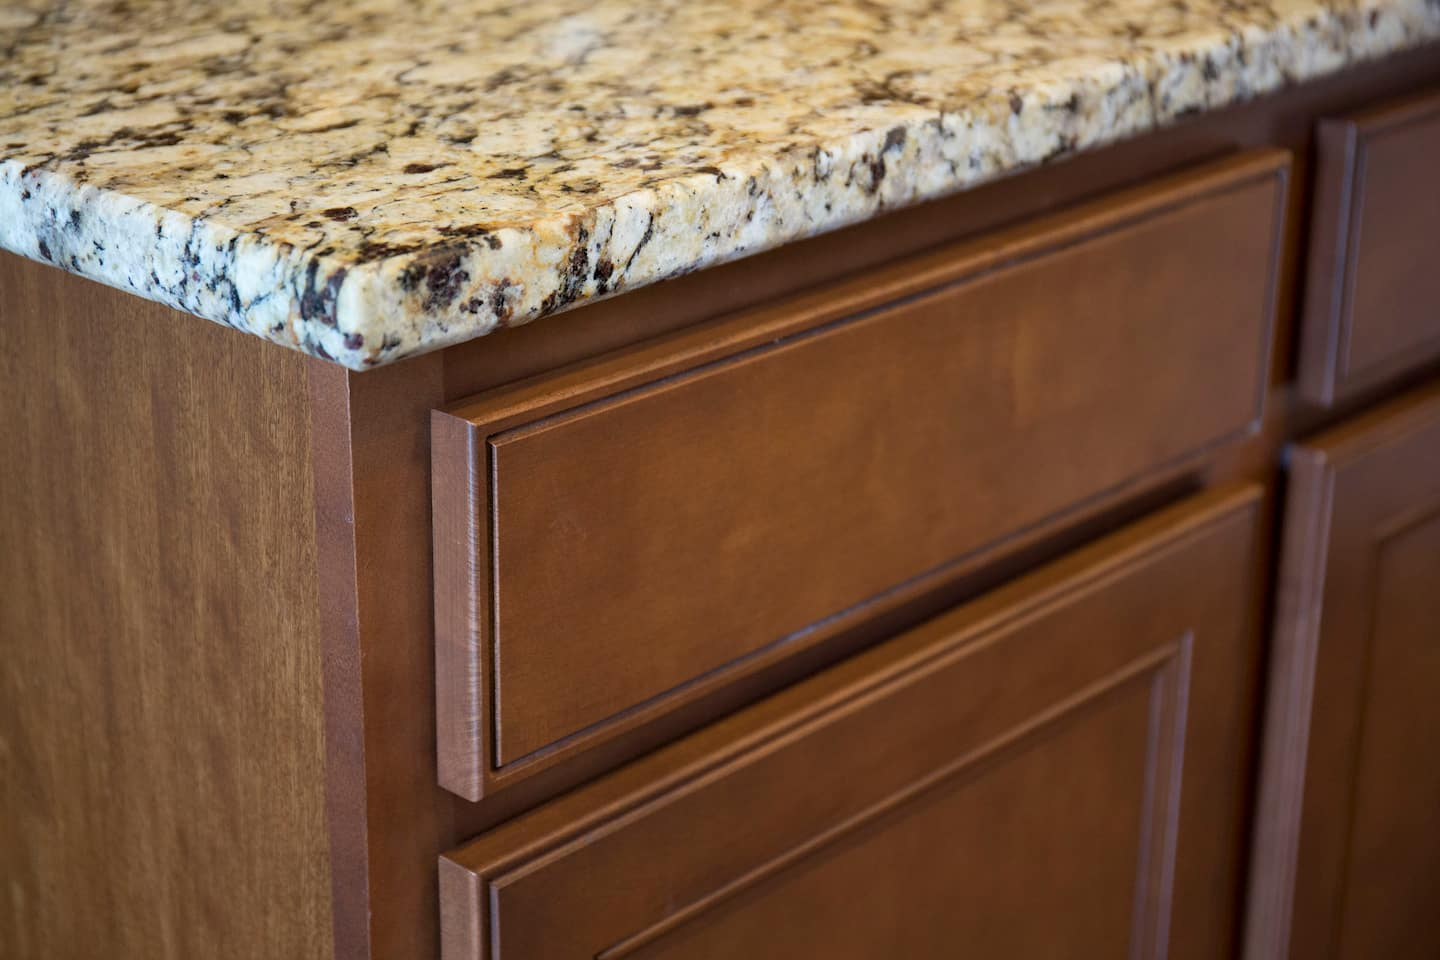 Granite Countertops Heat Damage Can I Repair A Damaged Countertop Angie S List